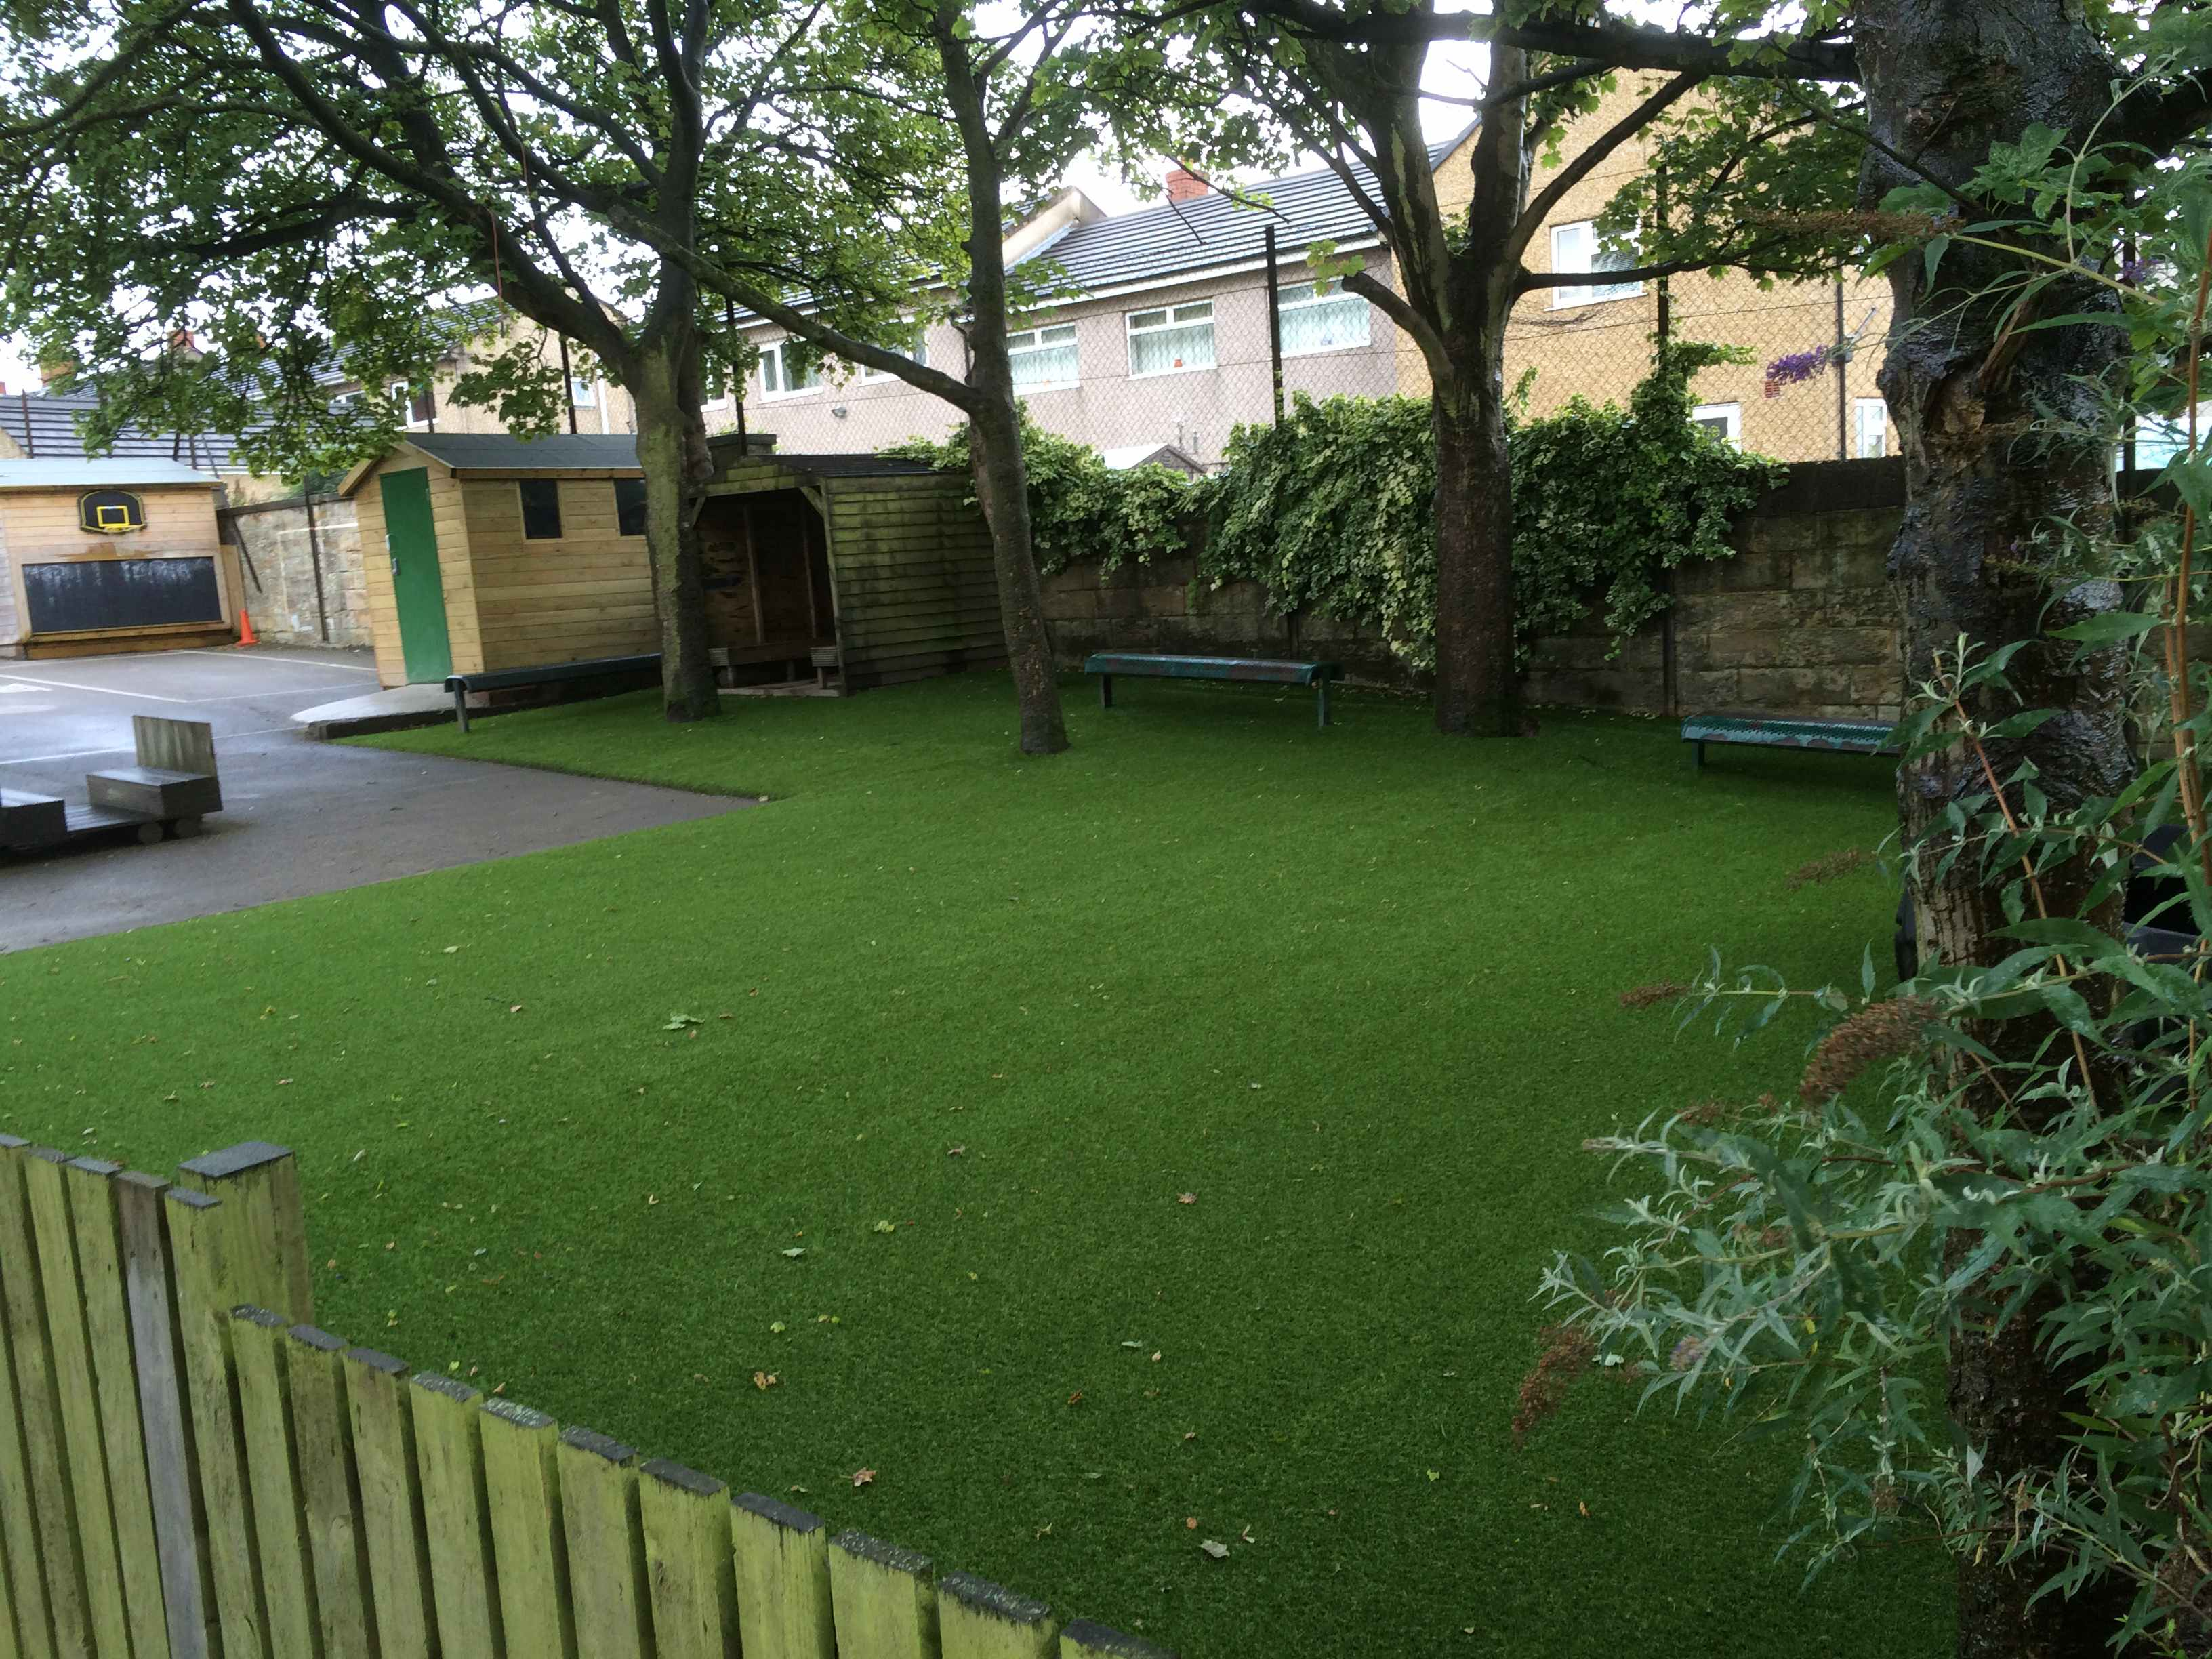 Picturesque Artificial Grass  Synthetic Turf  Natural Safety Surfacing With Remarkable Finished Artificial Grass With Adorable Garden Centres Nearby Also Local Gardening Services In Addition Cost Of Garden Design And The Secret Beauty Garden As Well As Gardens In Baton Rouge Additionally Garden Sheds Belfast From Letsplayeverywherecouk With   Remarkable Artificial Grass  Synthetic Turf  Natural Safety Surfacing With Adorable Finished Artificial Grass And Picturesque Garden Centres Nearby Also Local Gardening Services In Addition Cost Of Garden Design From Letsplayeverywherecouk